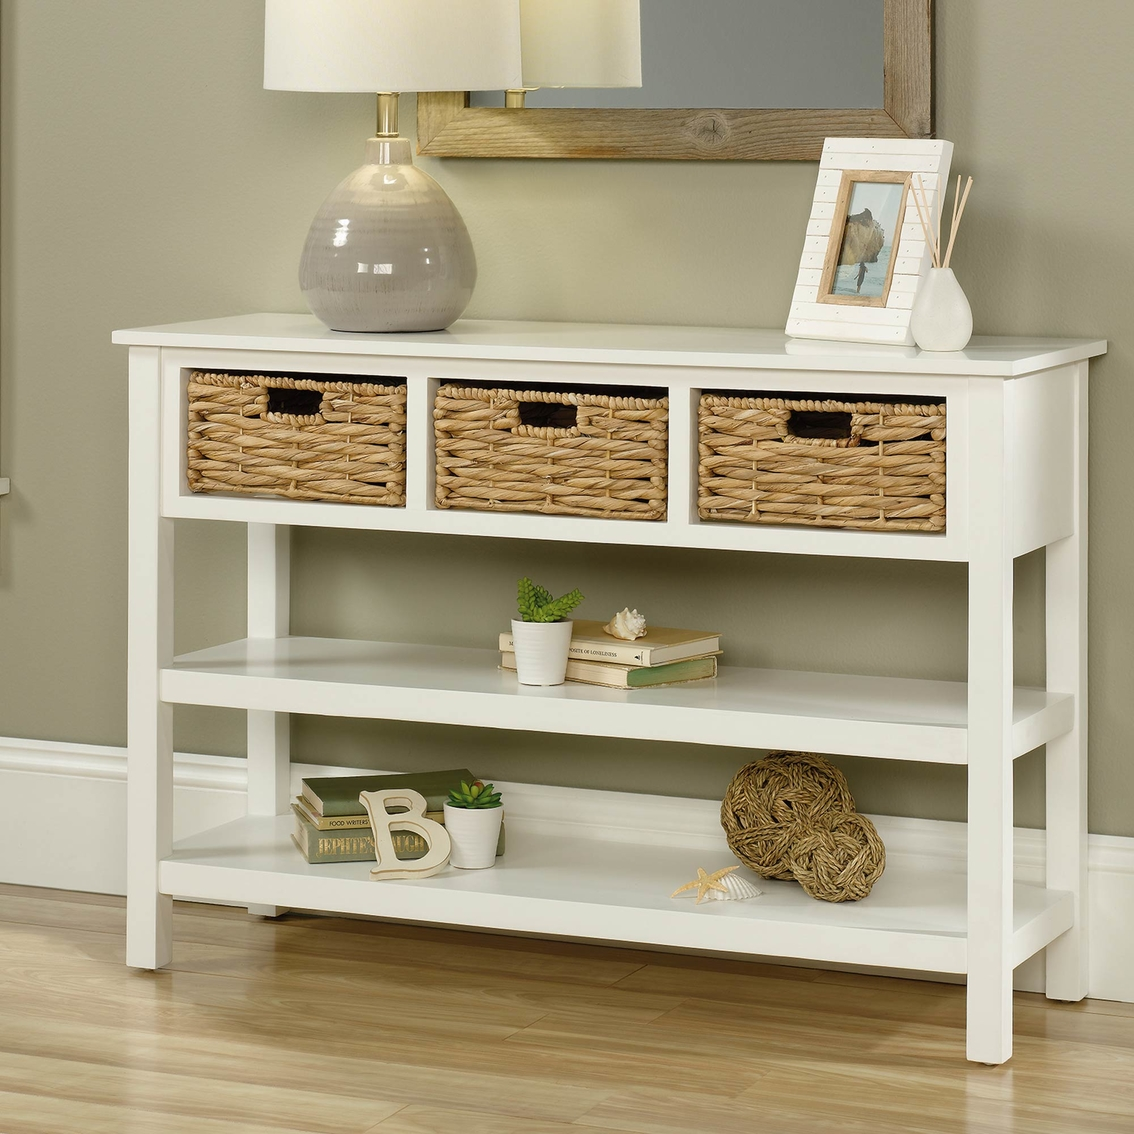 Surprising Sauder Cottage Road Console With Baskets Entry Furniture Ncnpc Chair Design For Home Ncnpcorg